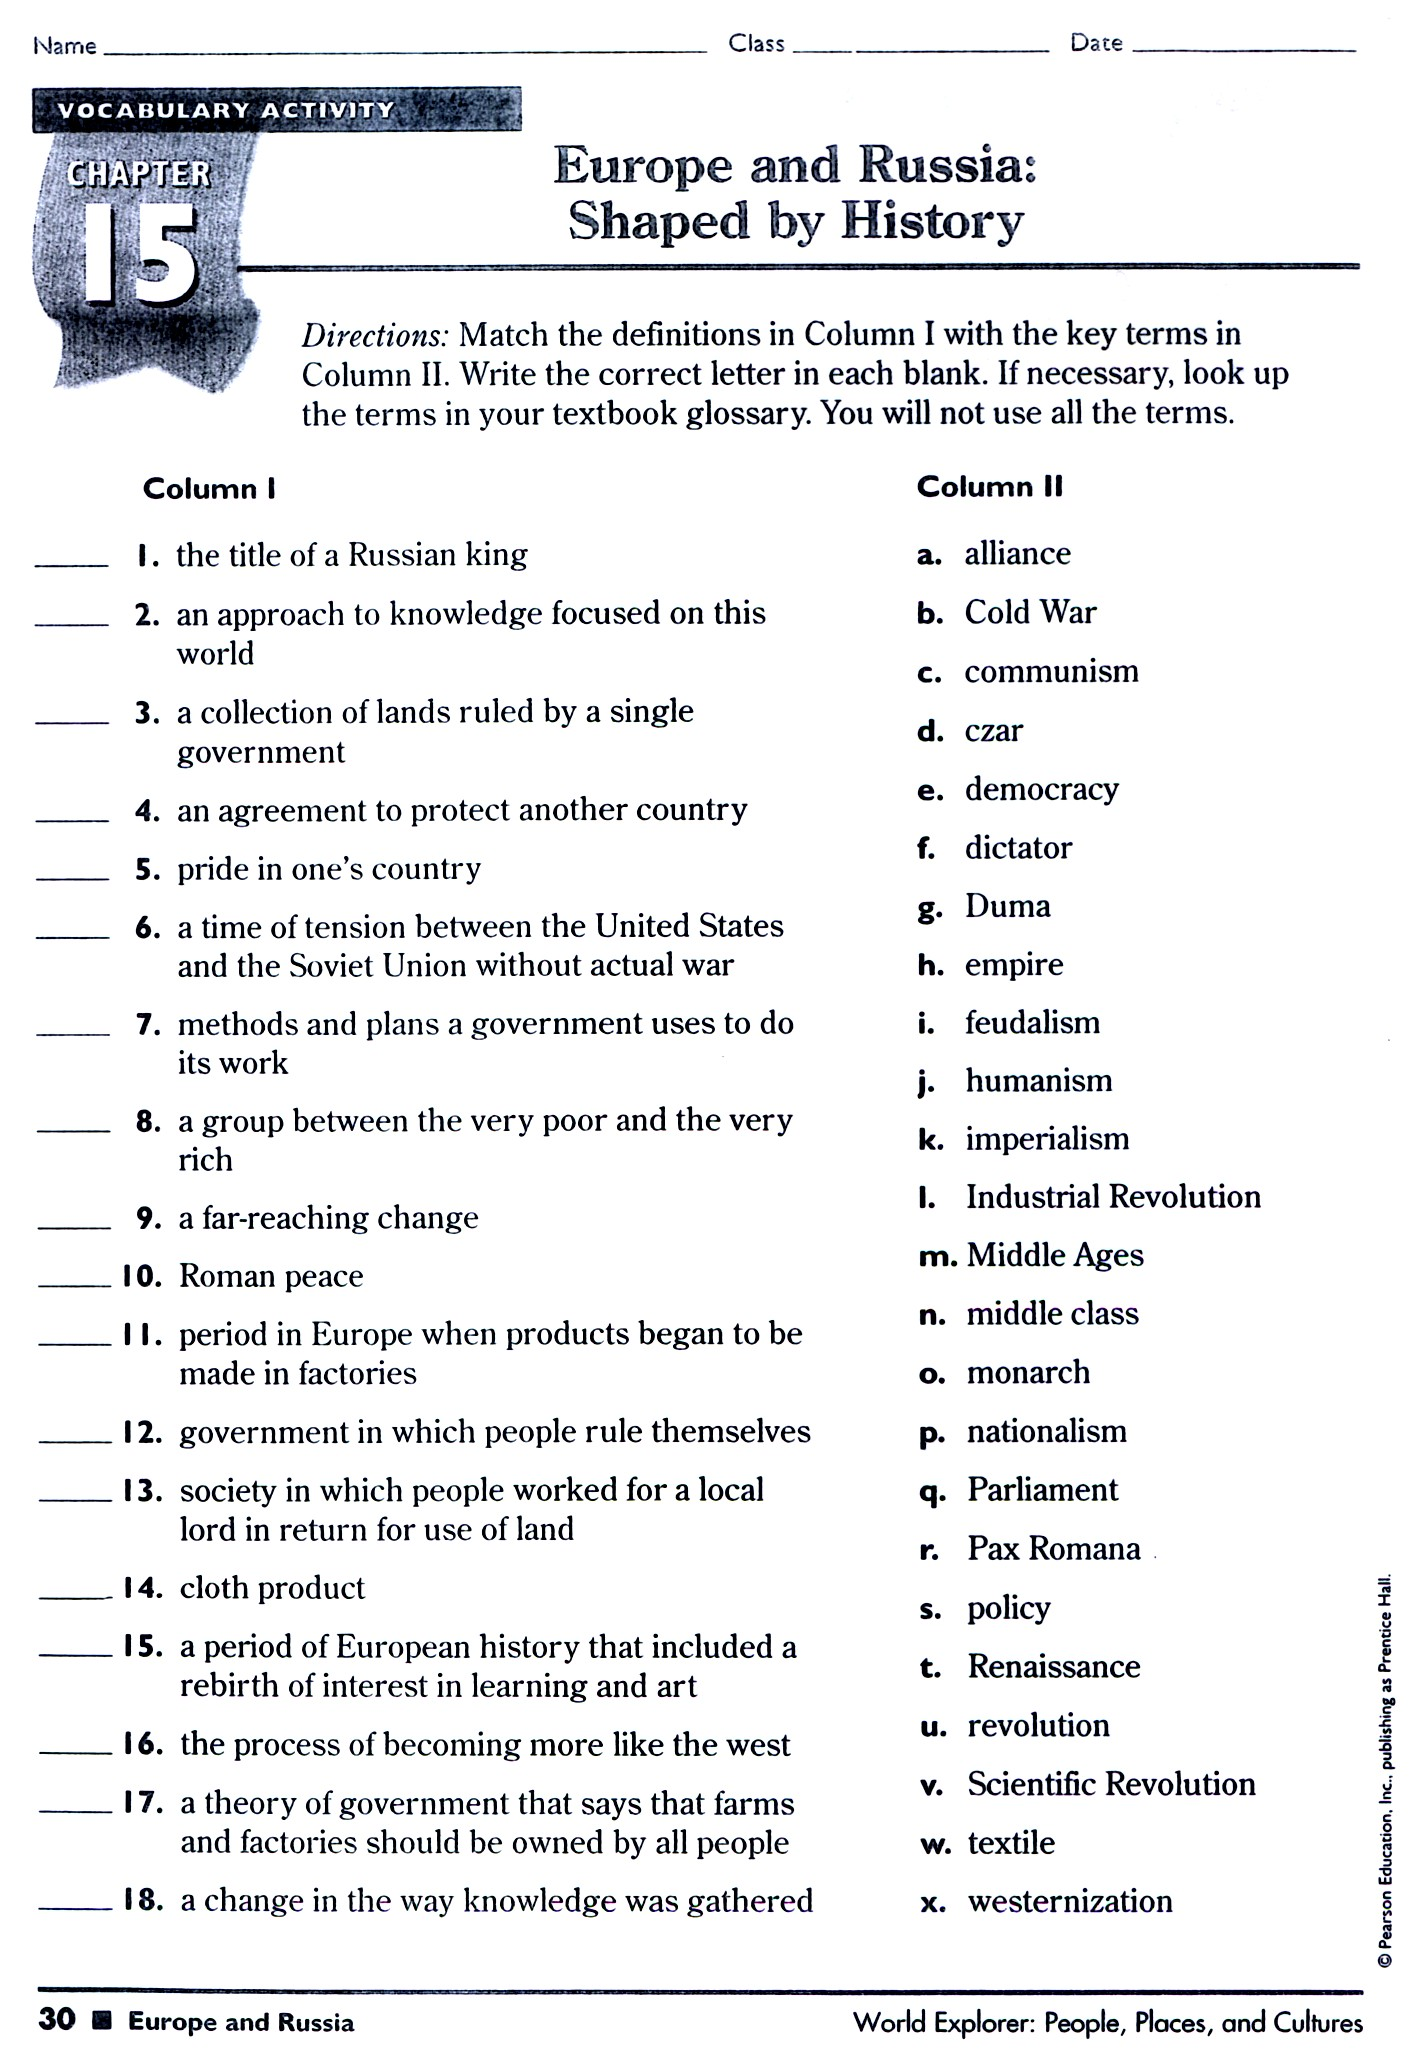 5Th Grade History Worksheets – Third Grade Social Studies Worksheets